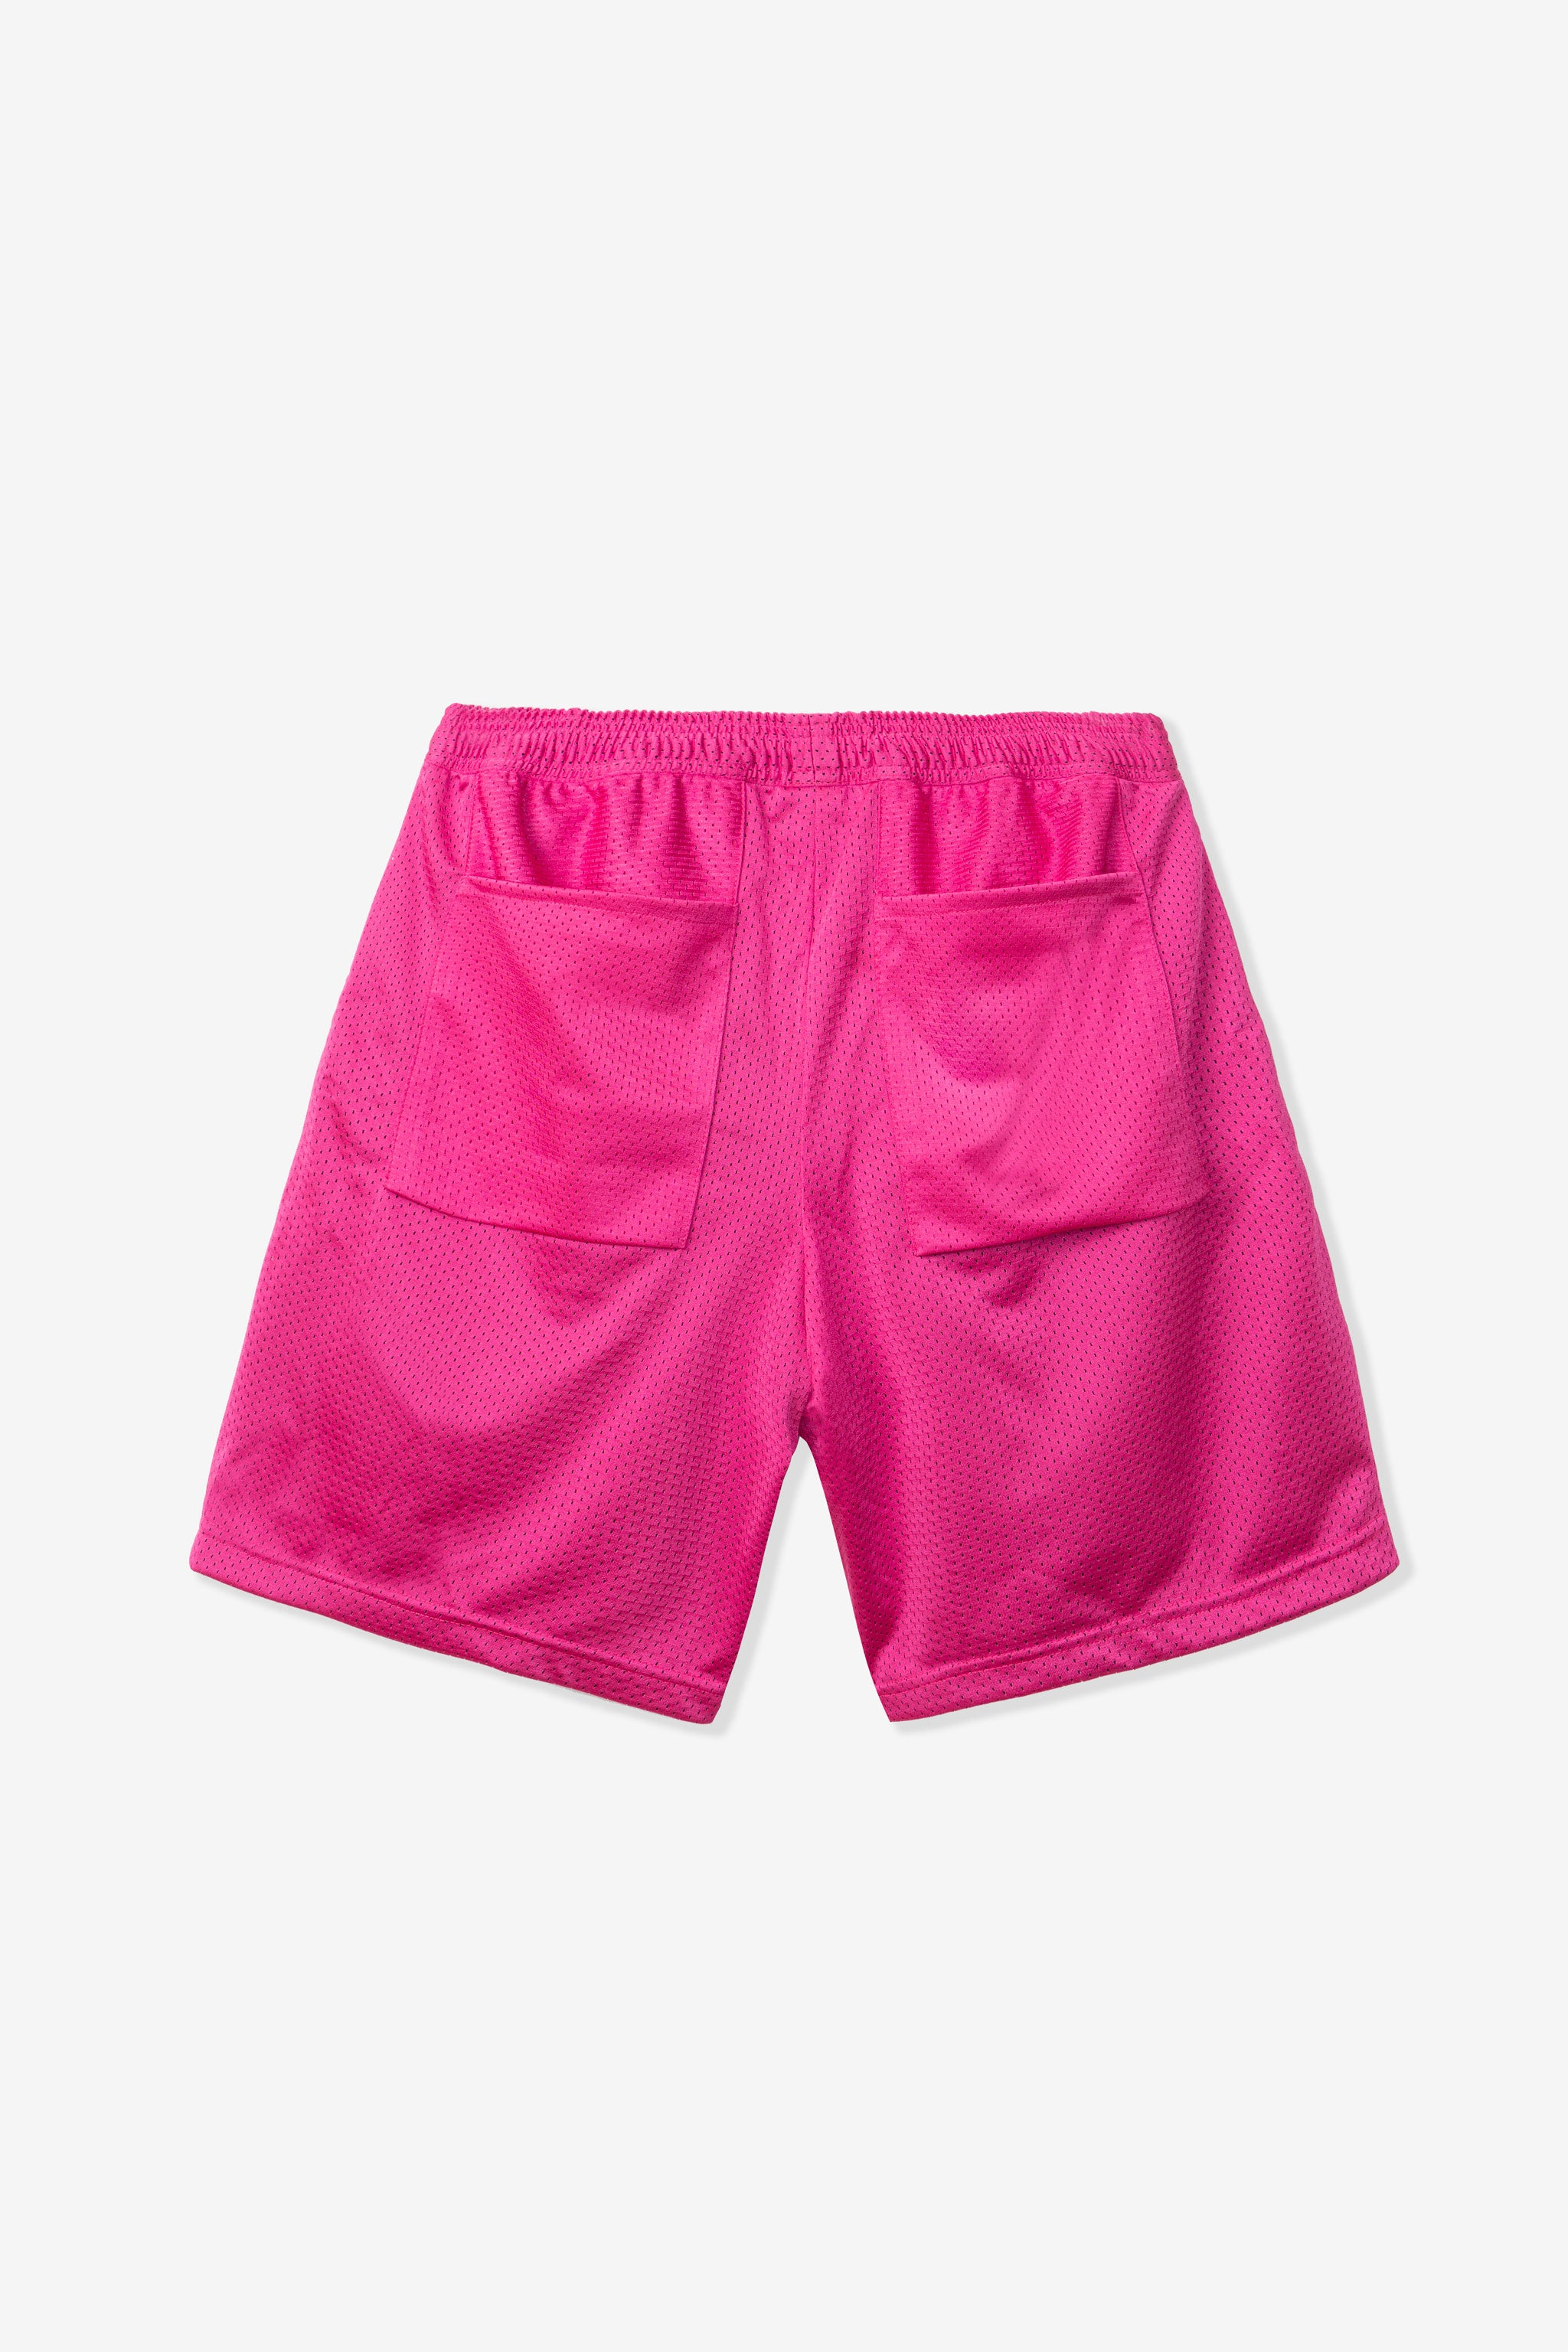 Goodfight Grocery Getter Shorts Pink